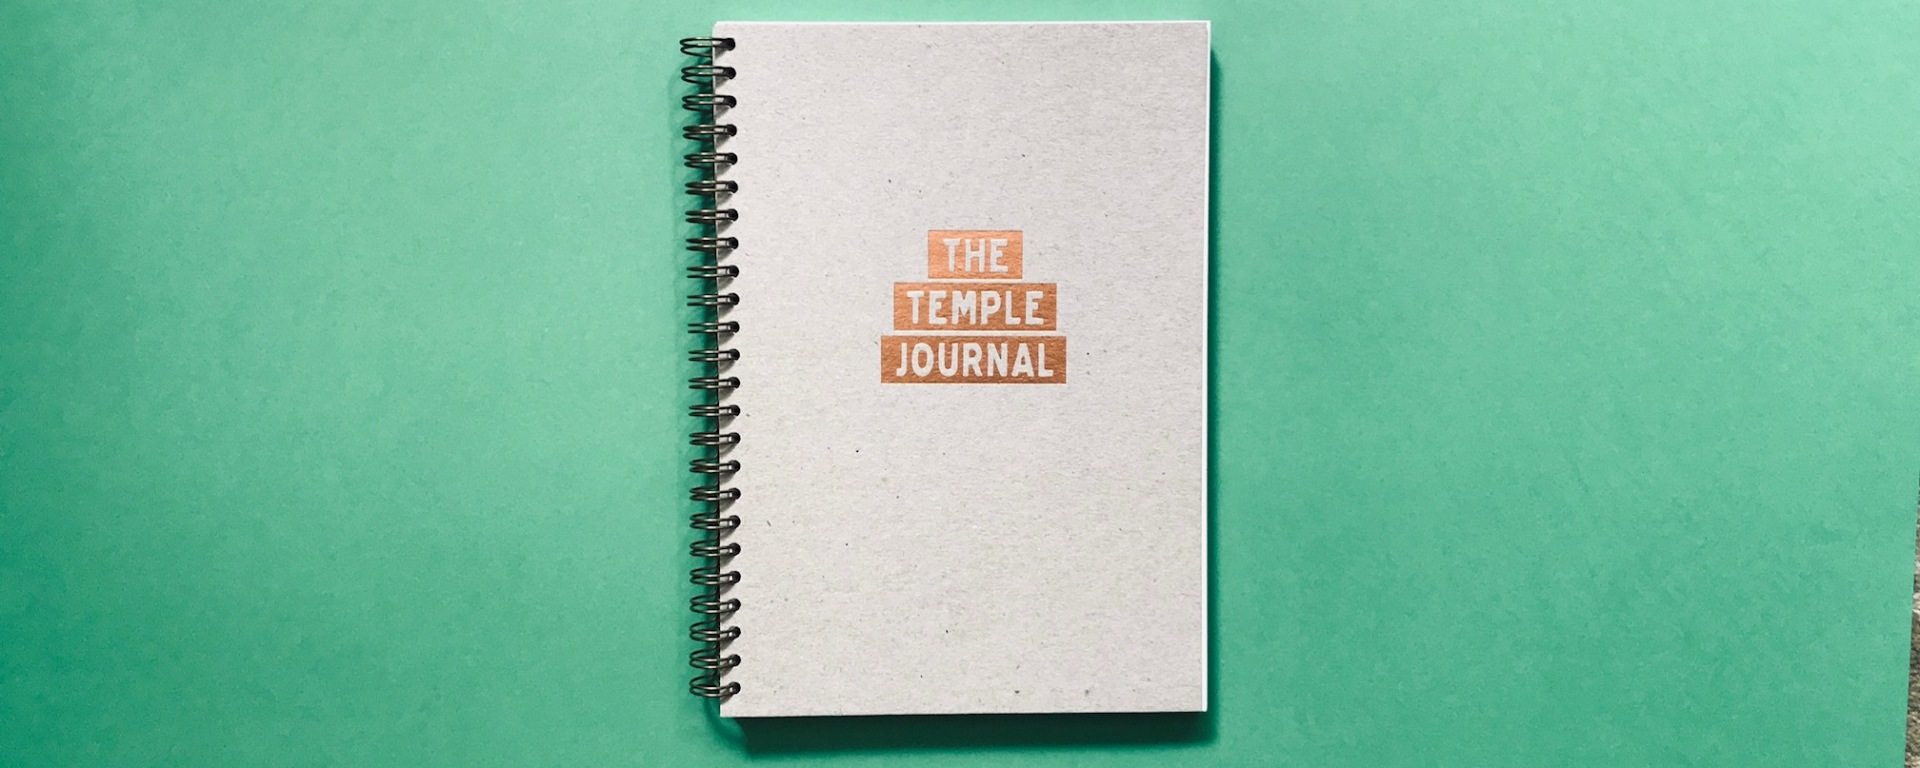 The Temple Journal Health and Wellness Journal